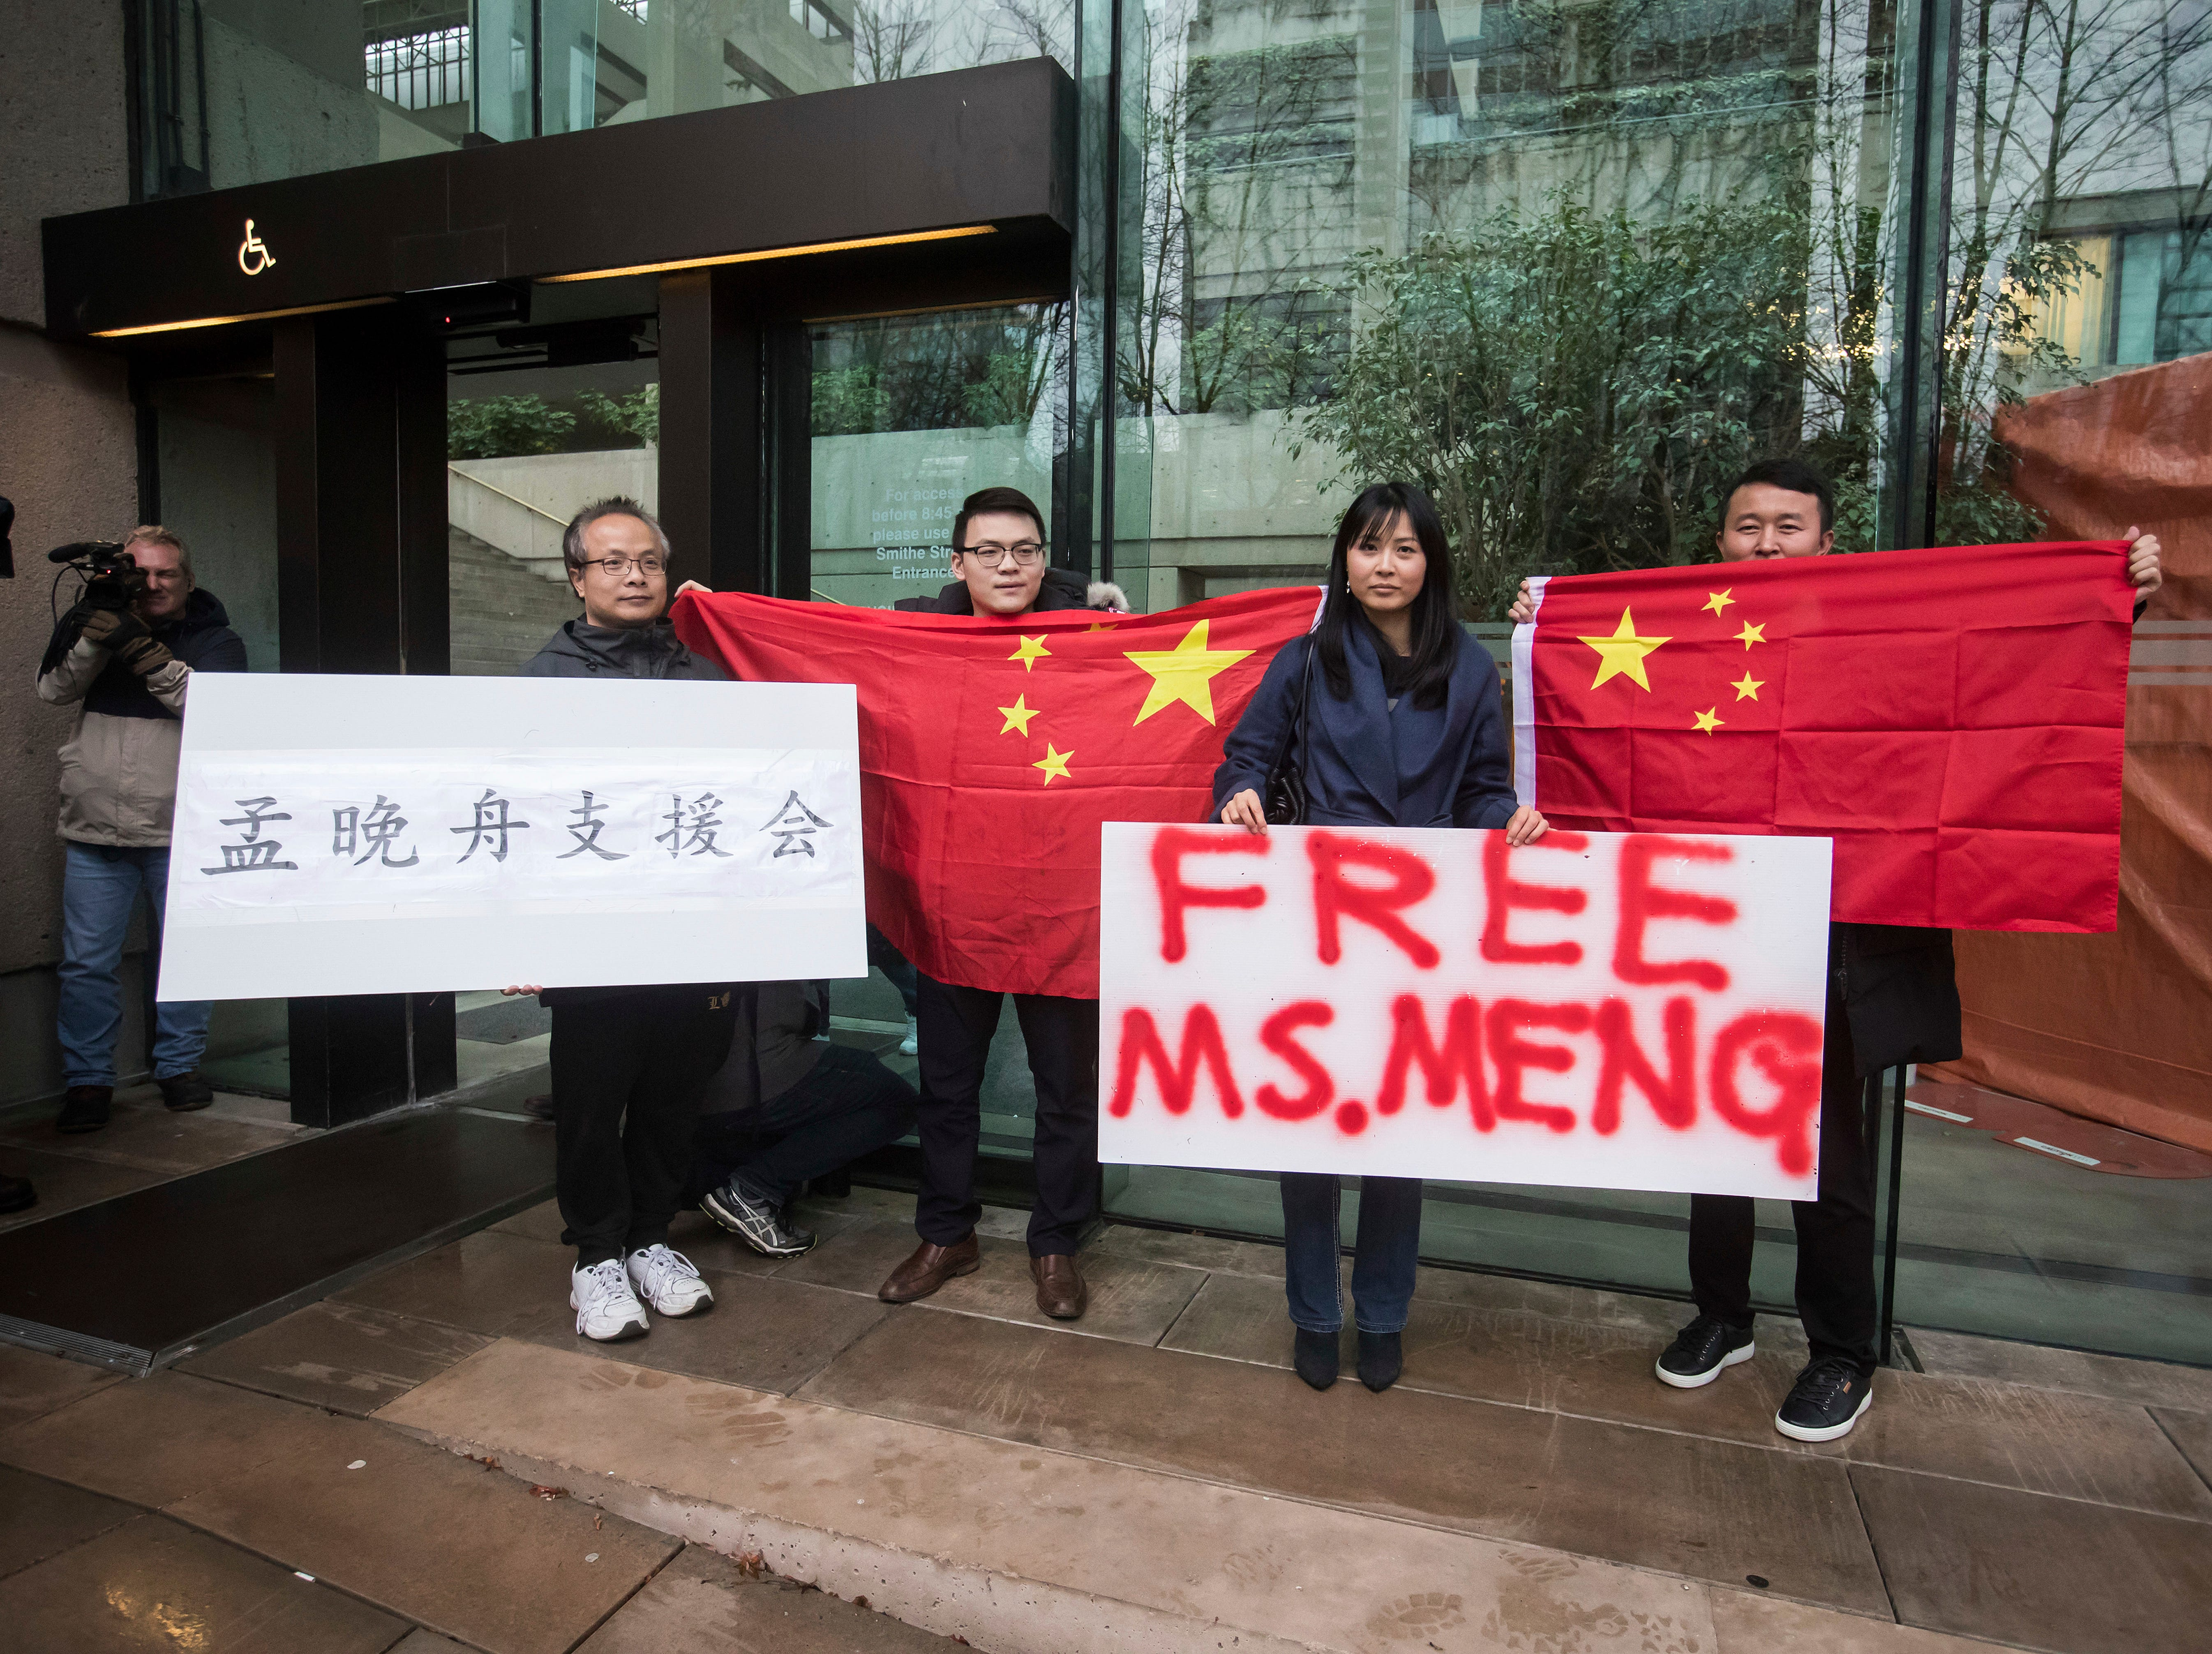 Chinese citizens celebrate after Huawei executive Meng Wanzhou is released in Canada